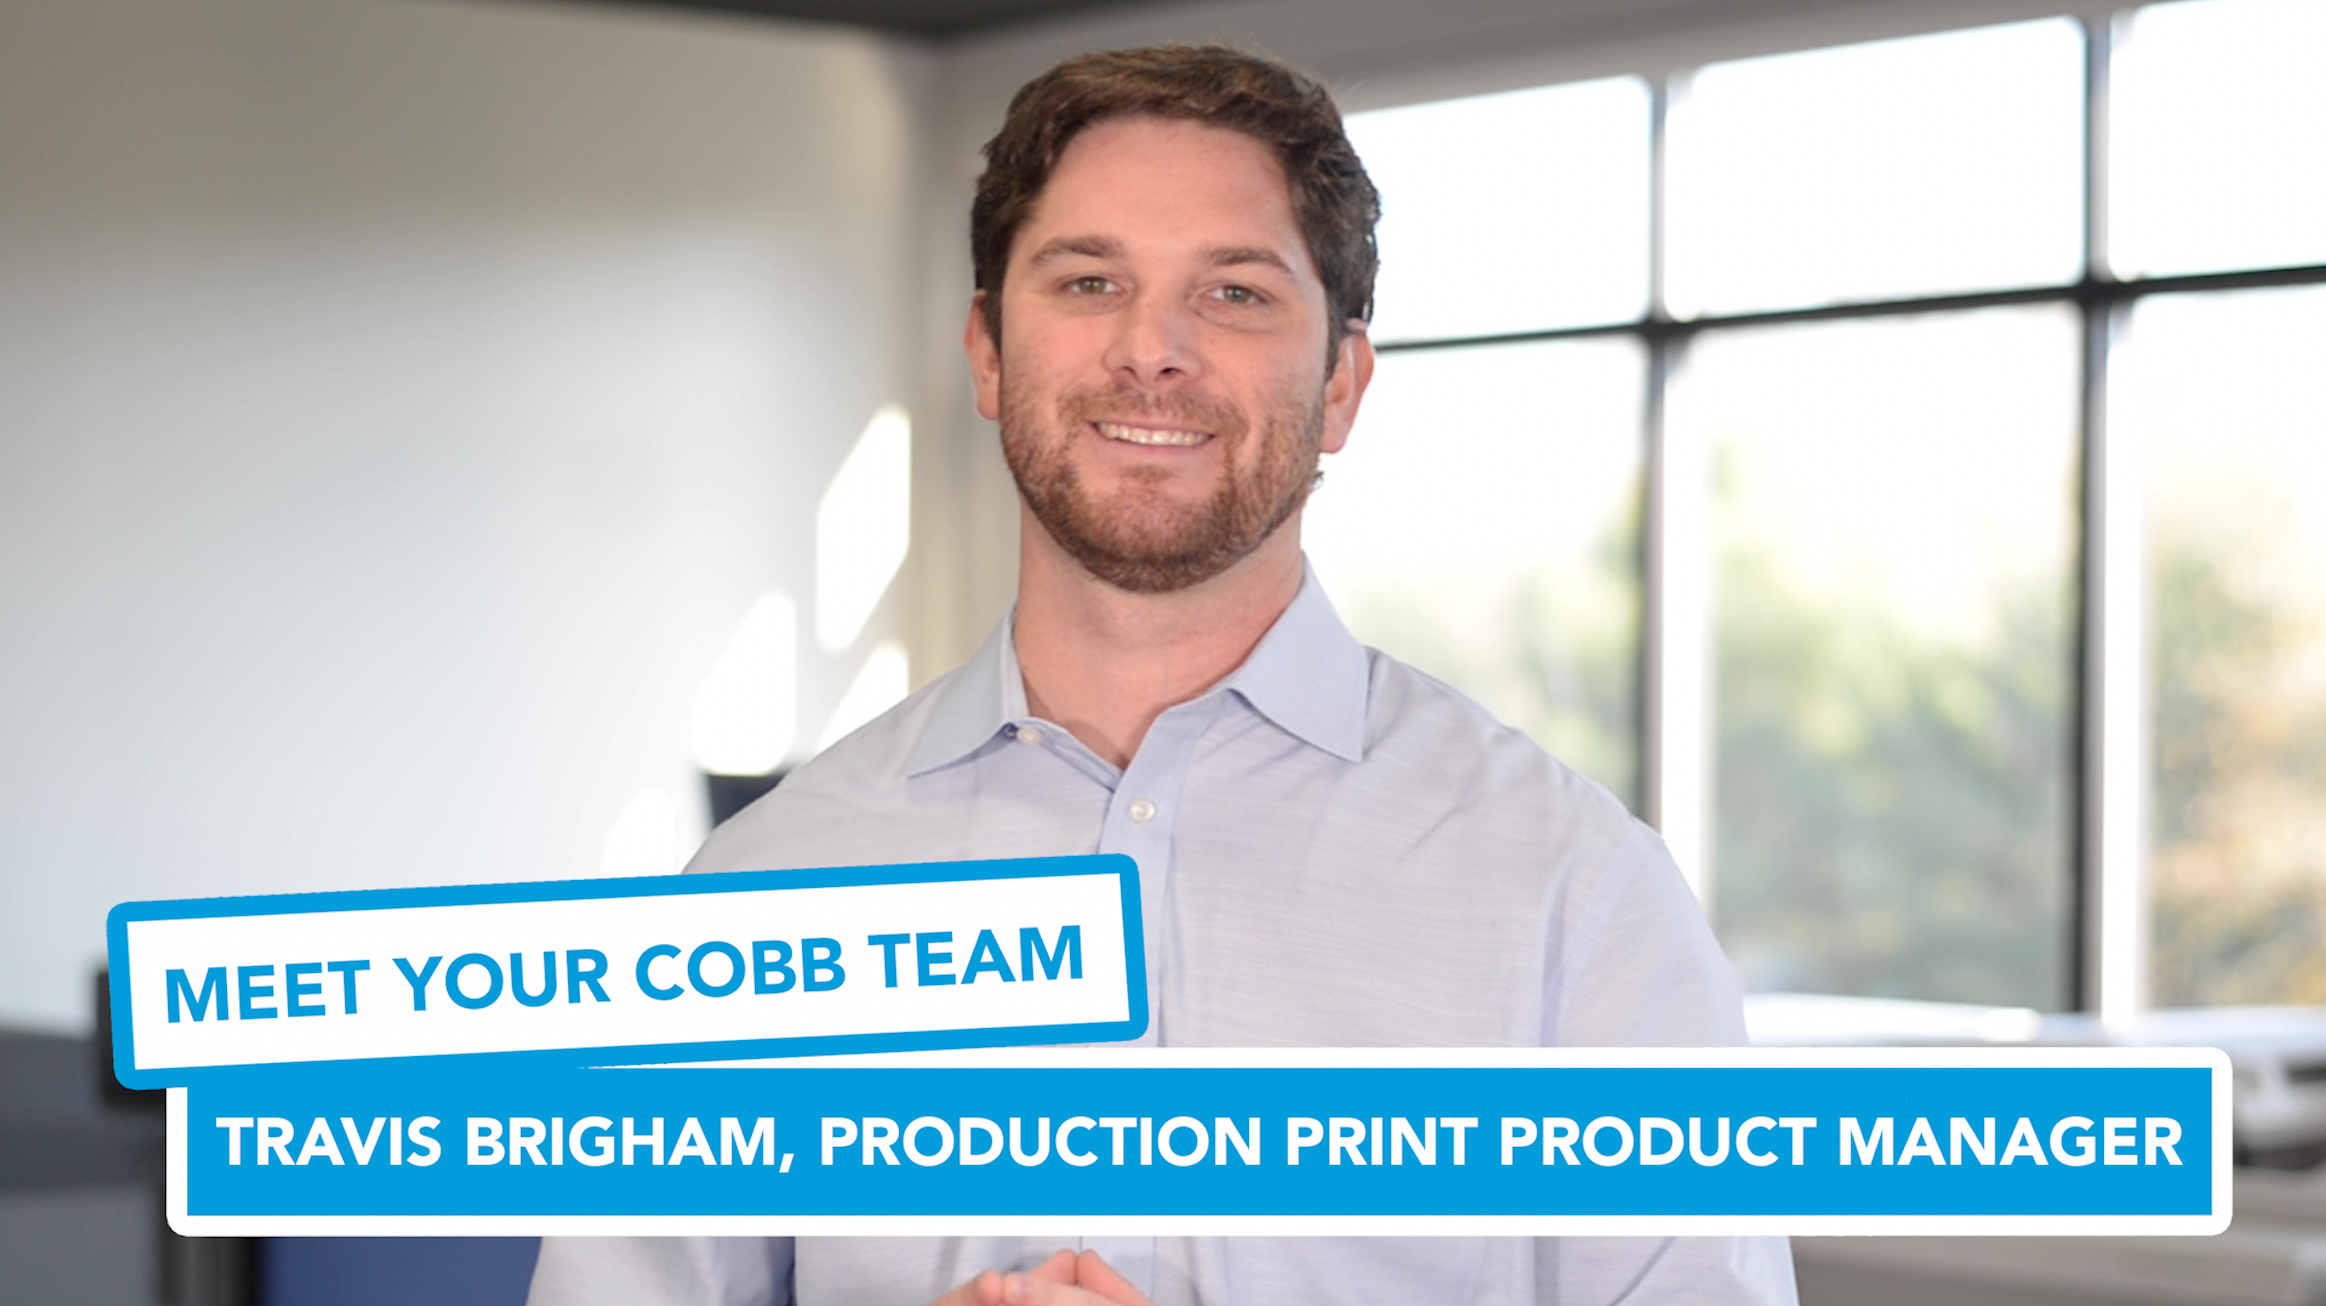 Preview - Meet Your Cobb Team Travis Brigham, Production Print Product Manager